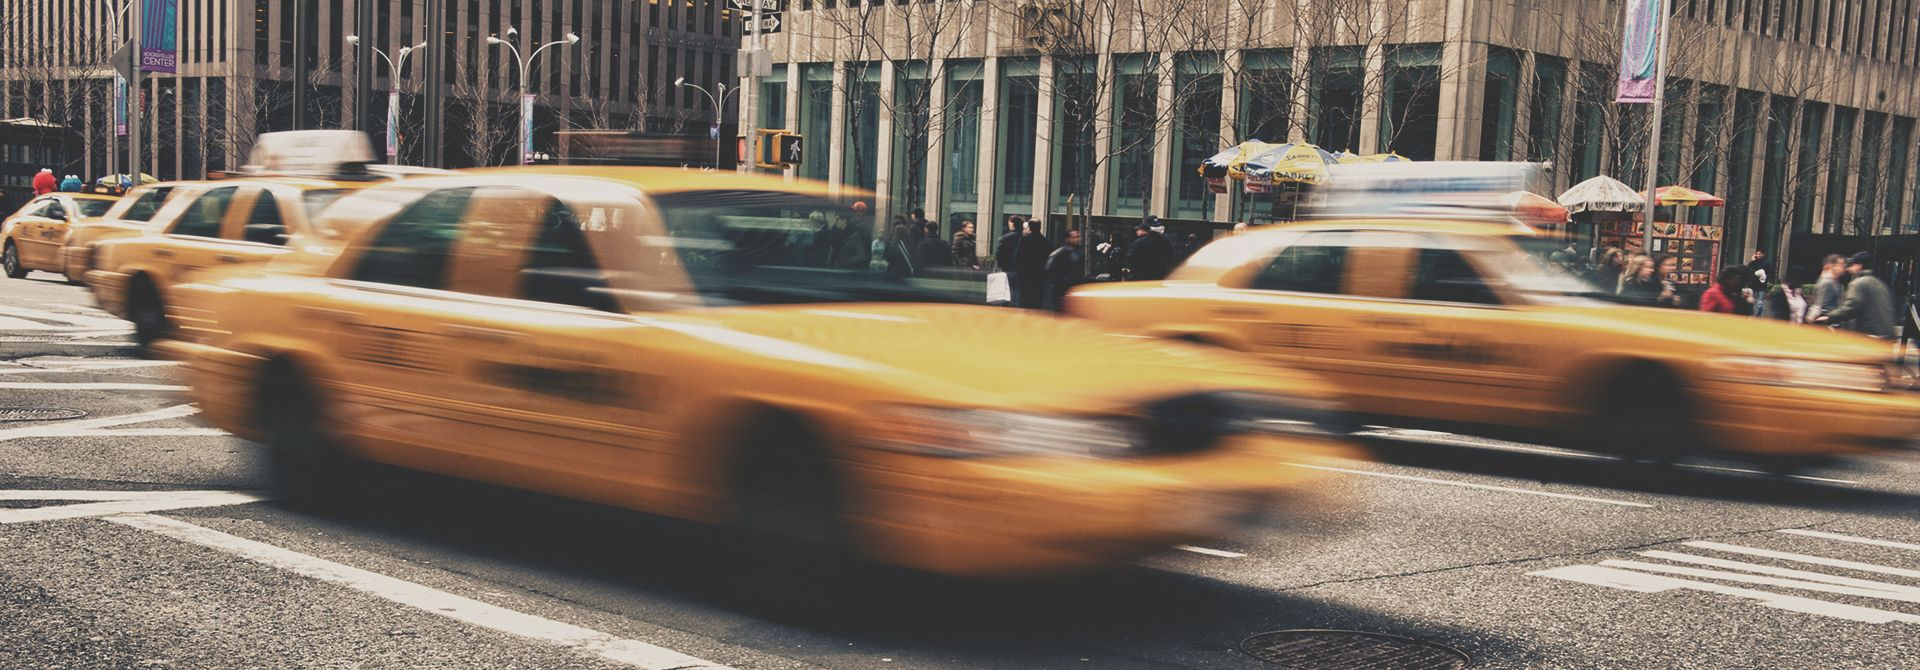 taxis driving down a new york street